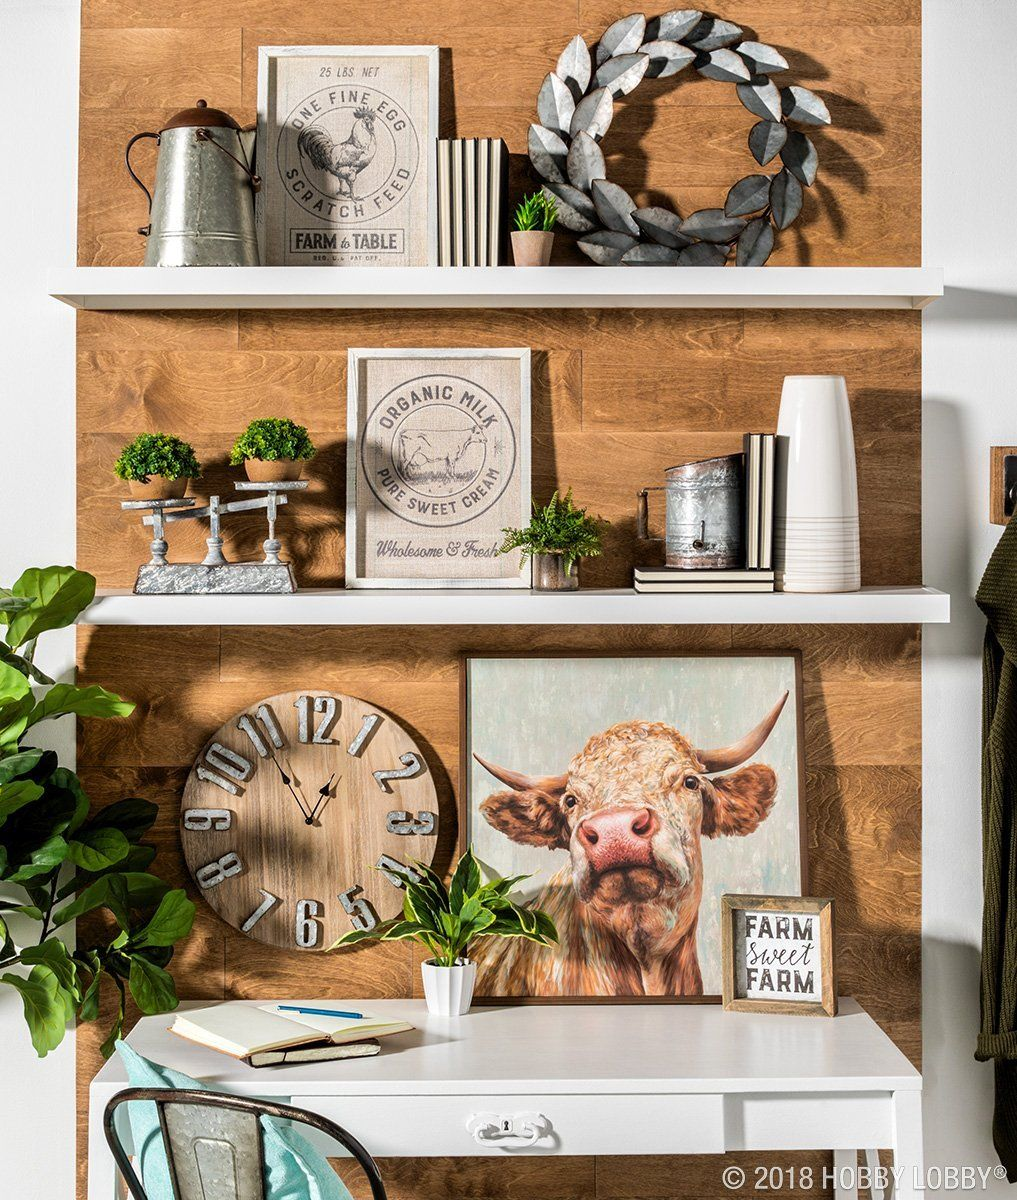 Wall Decor And More: Create A Space You Wouldn't Mind Working In With On-trend